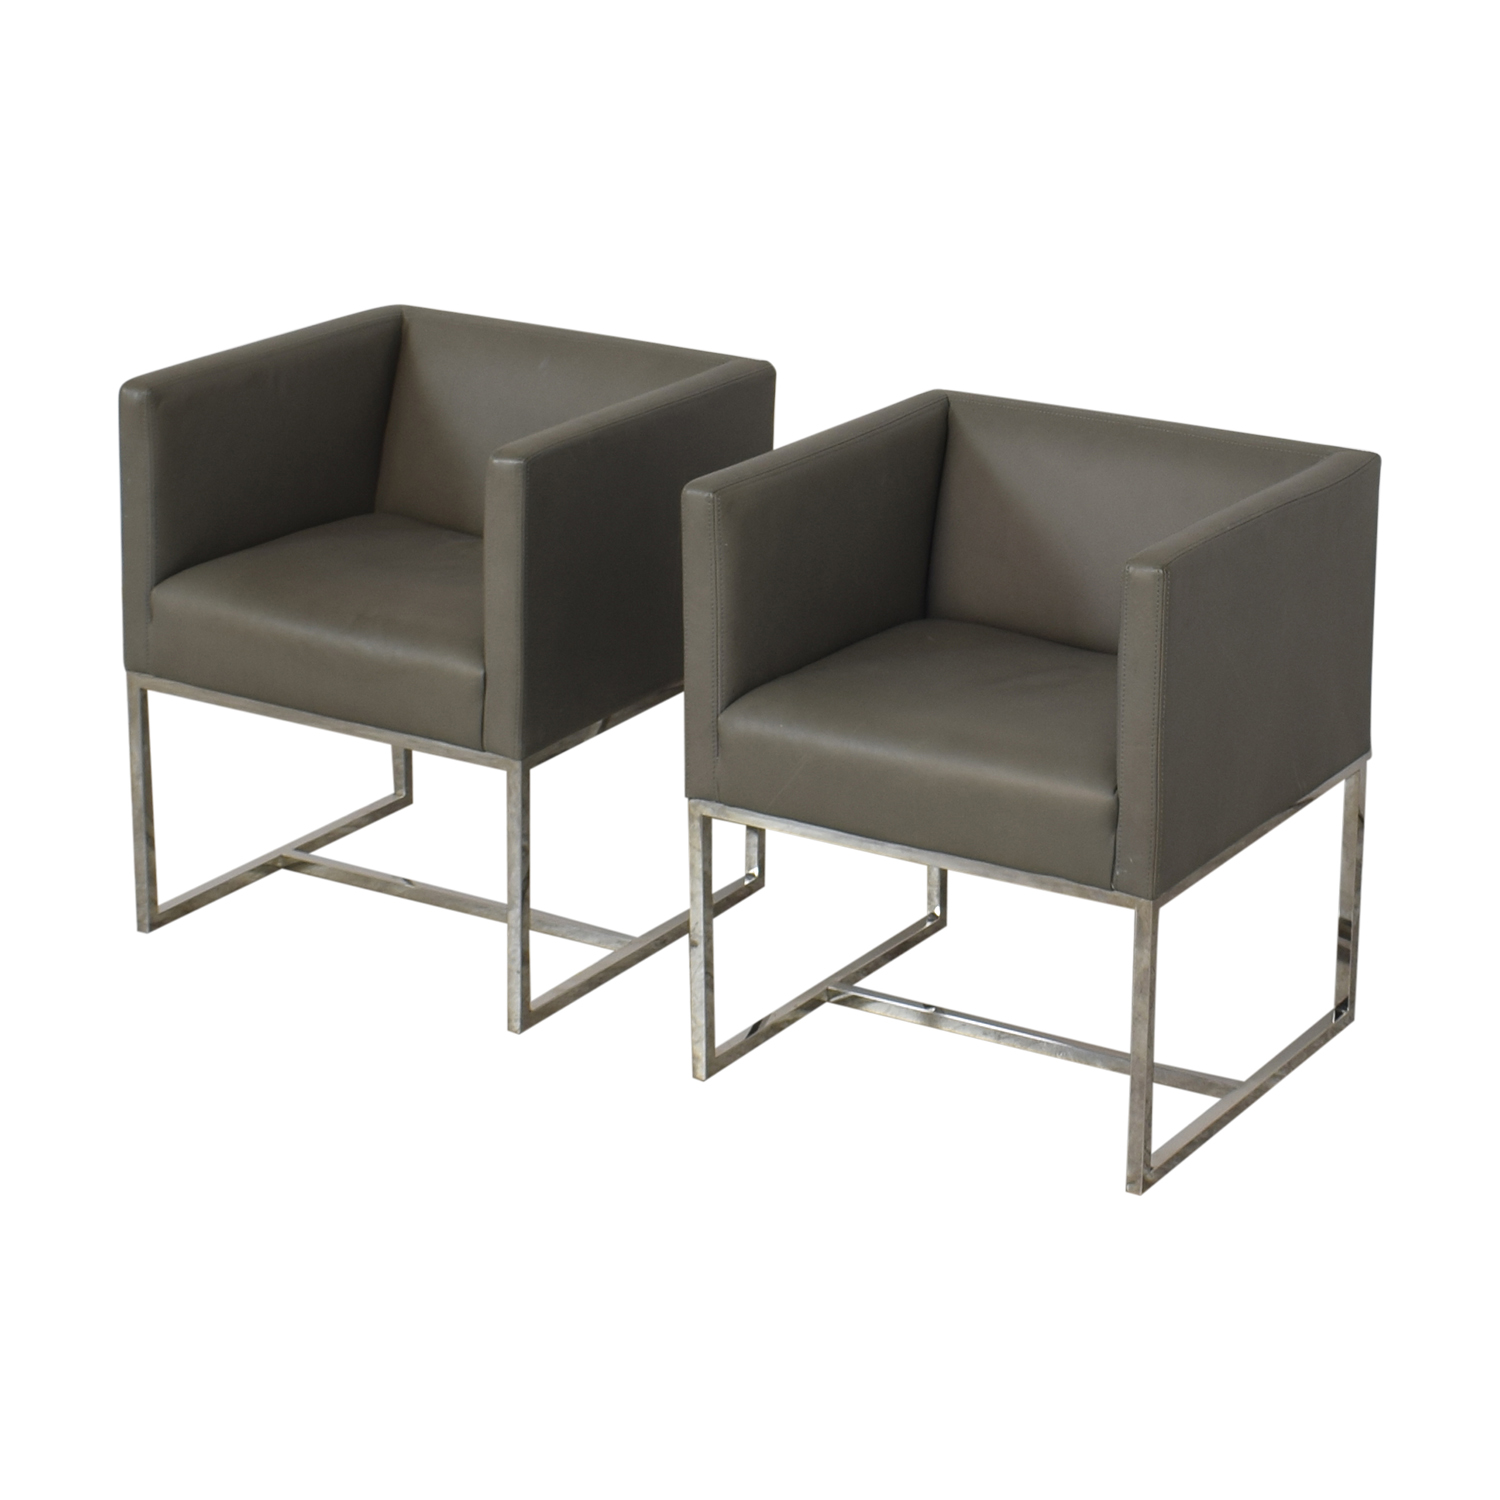 Restoration Hardware Restoration Hardware Emery Shelter Arm Chairs nj